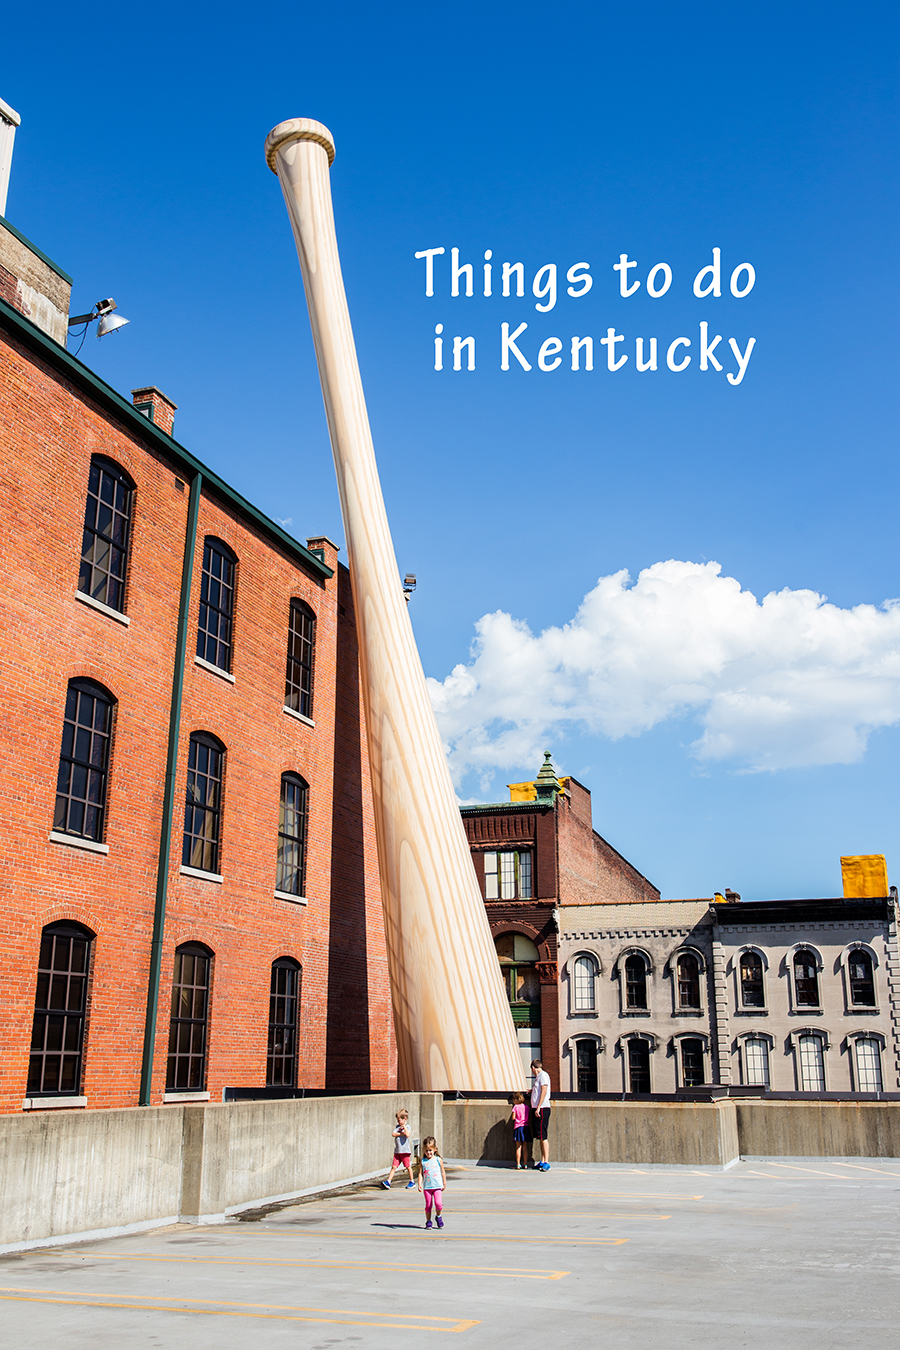 Things to do in Kentucky